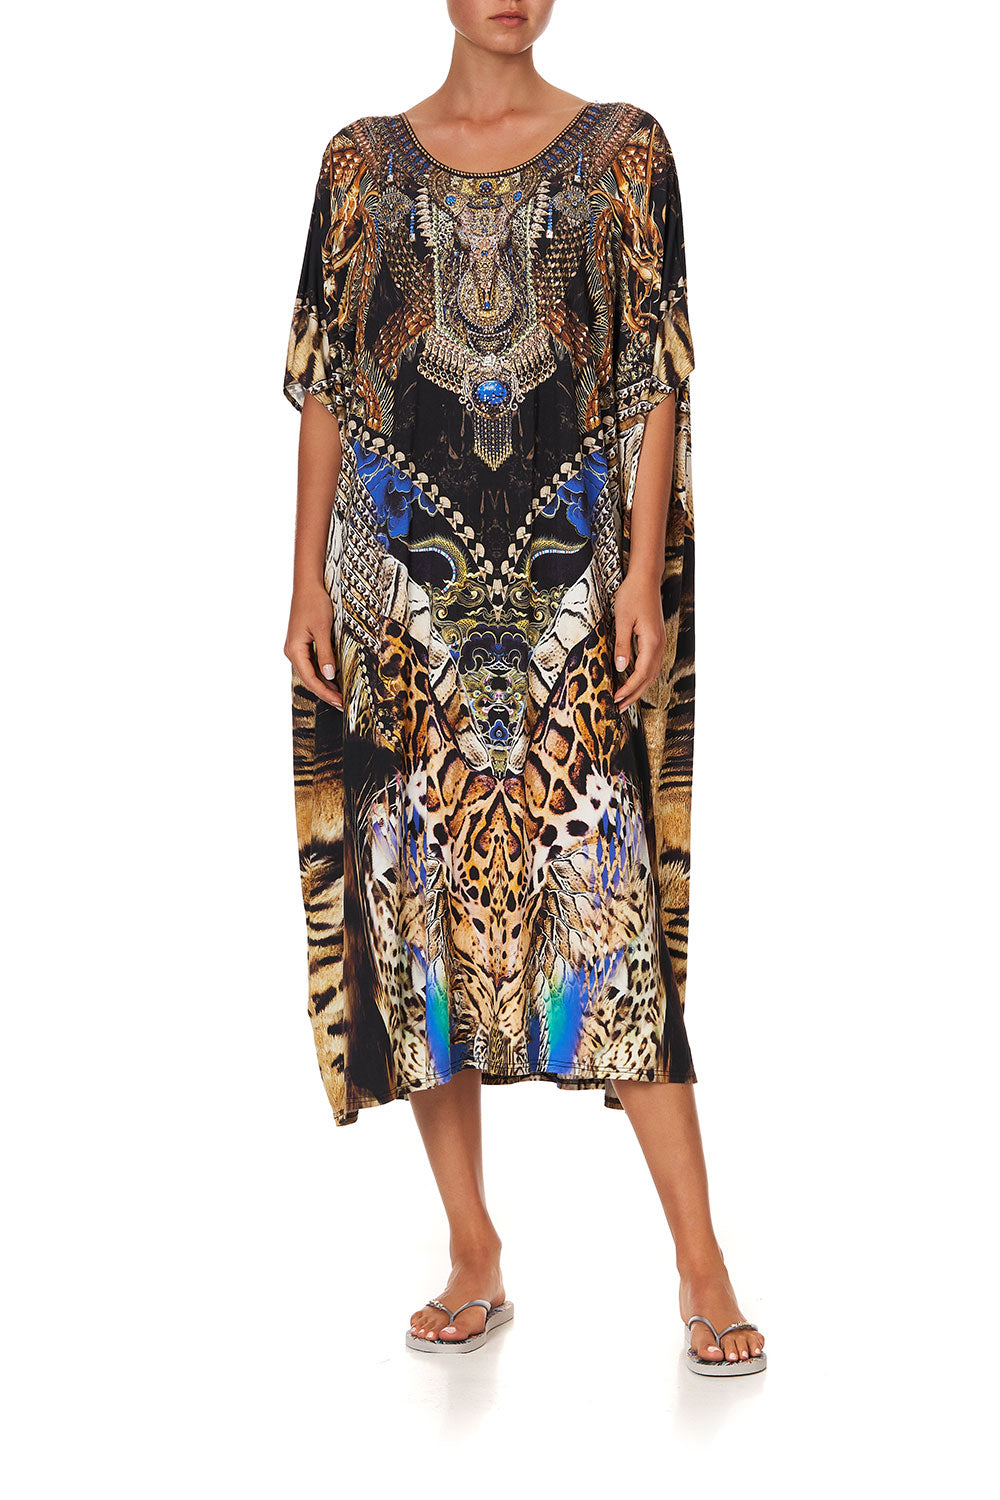 ROUND NECK LOUNGE KAFTAN DRAGON LADY